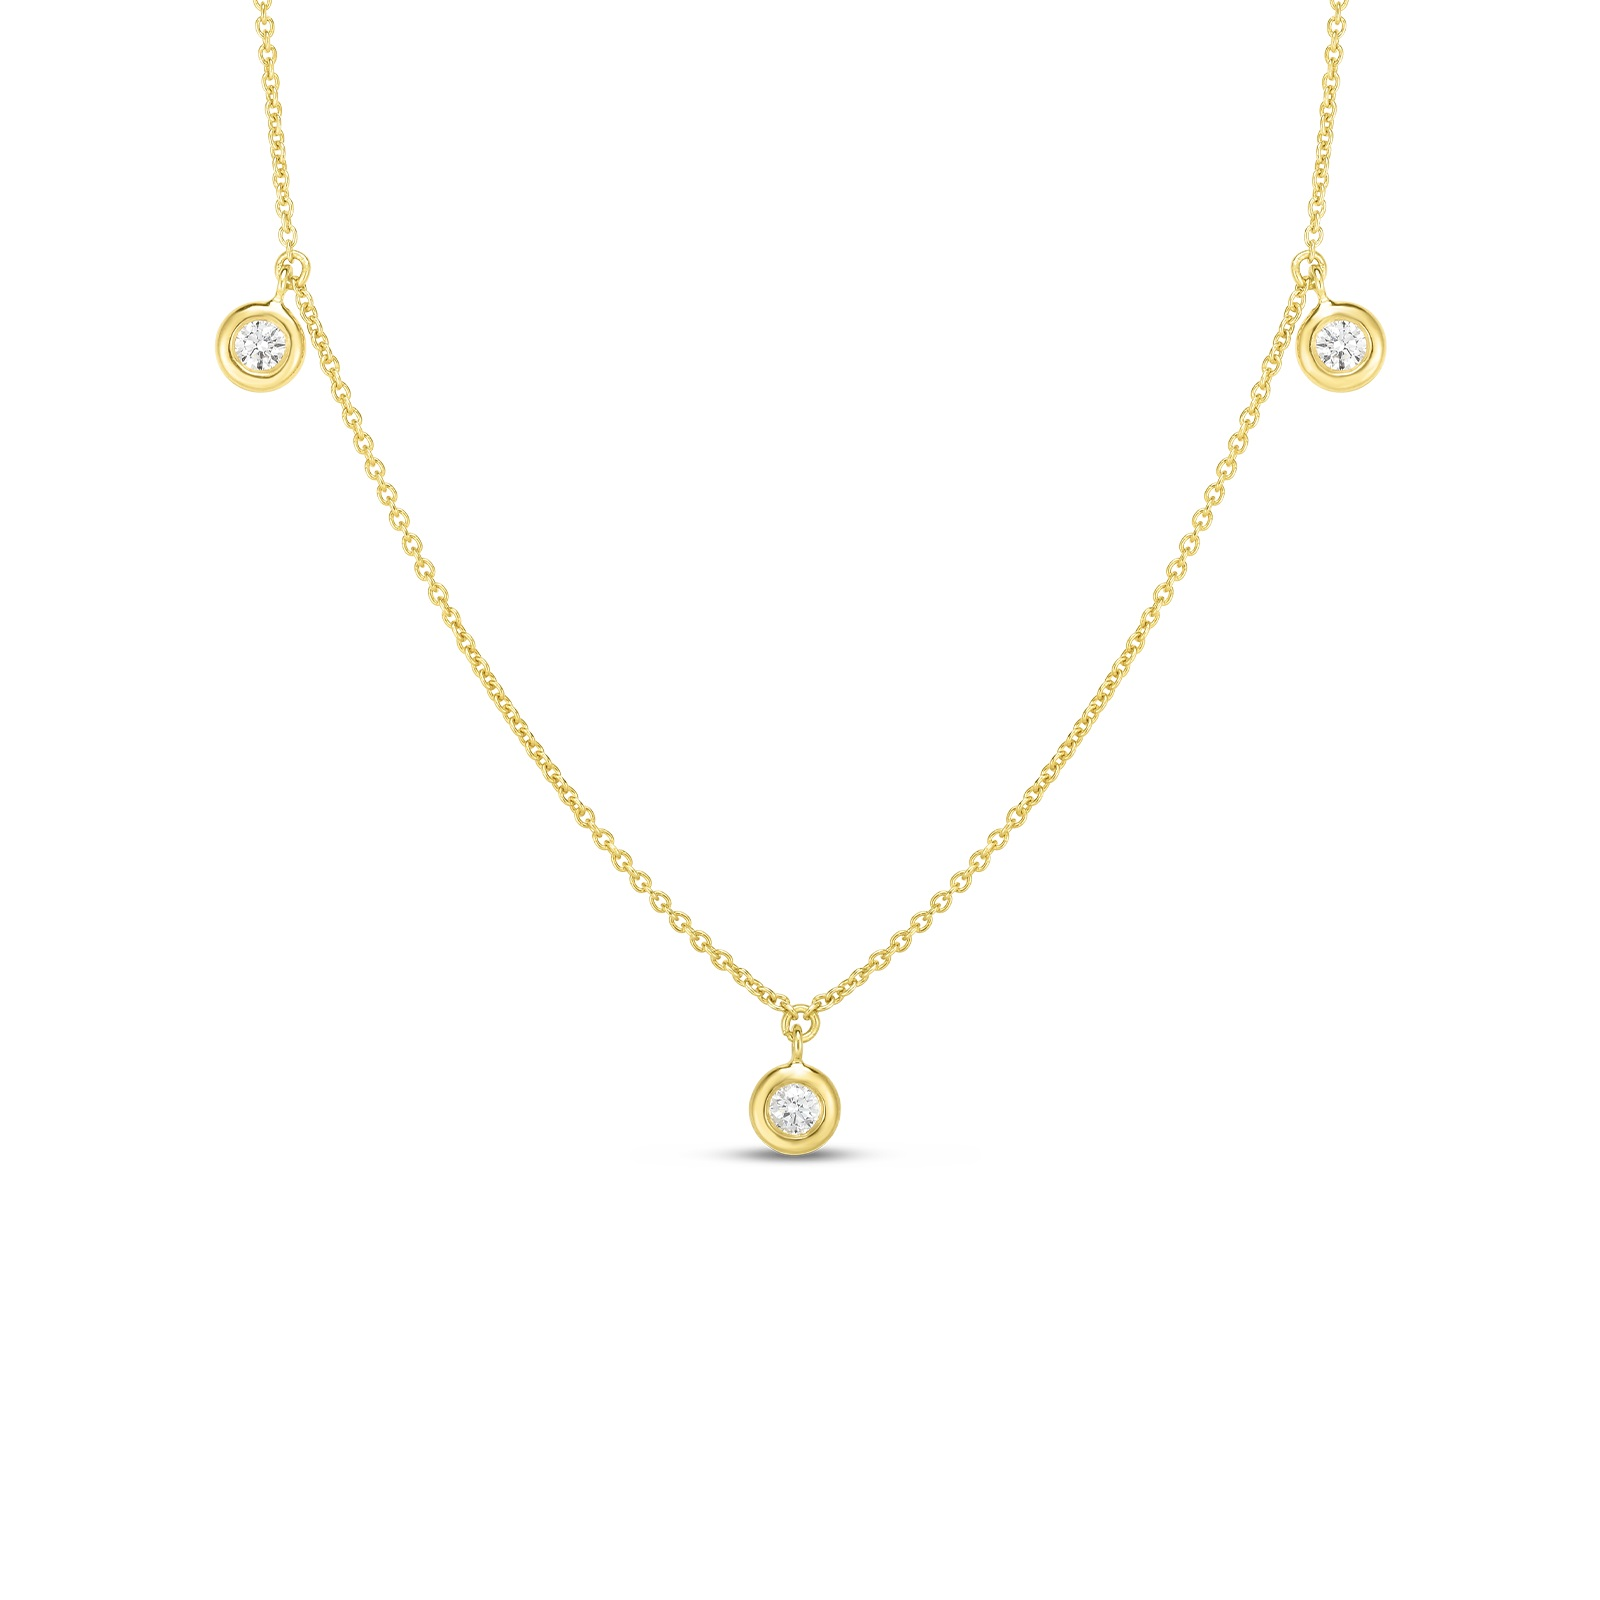 Roberto Coin 18K Yellow Gold .13cts  Diamond Gold Necklace with Stones 530010AYCHX0